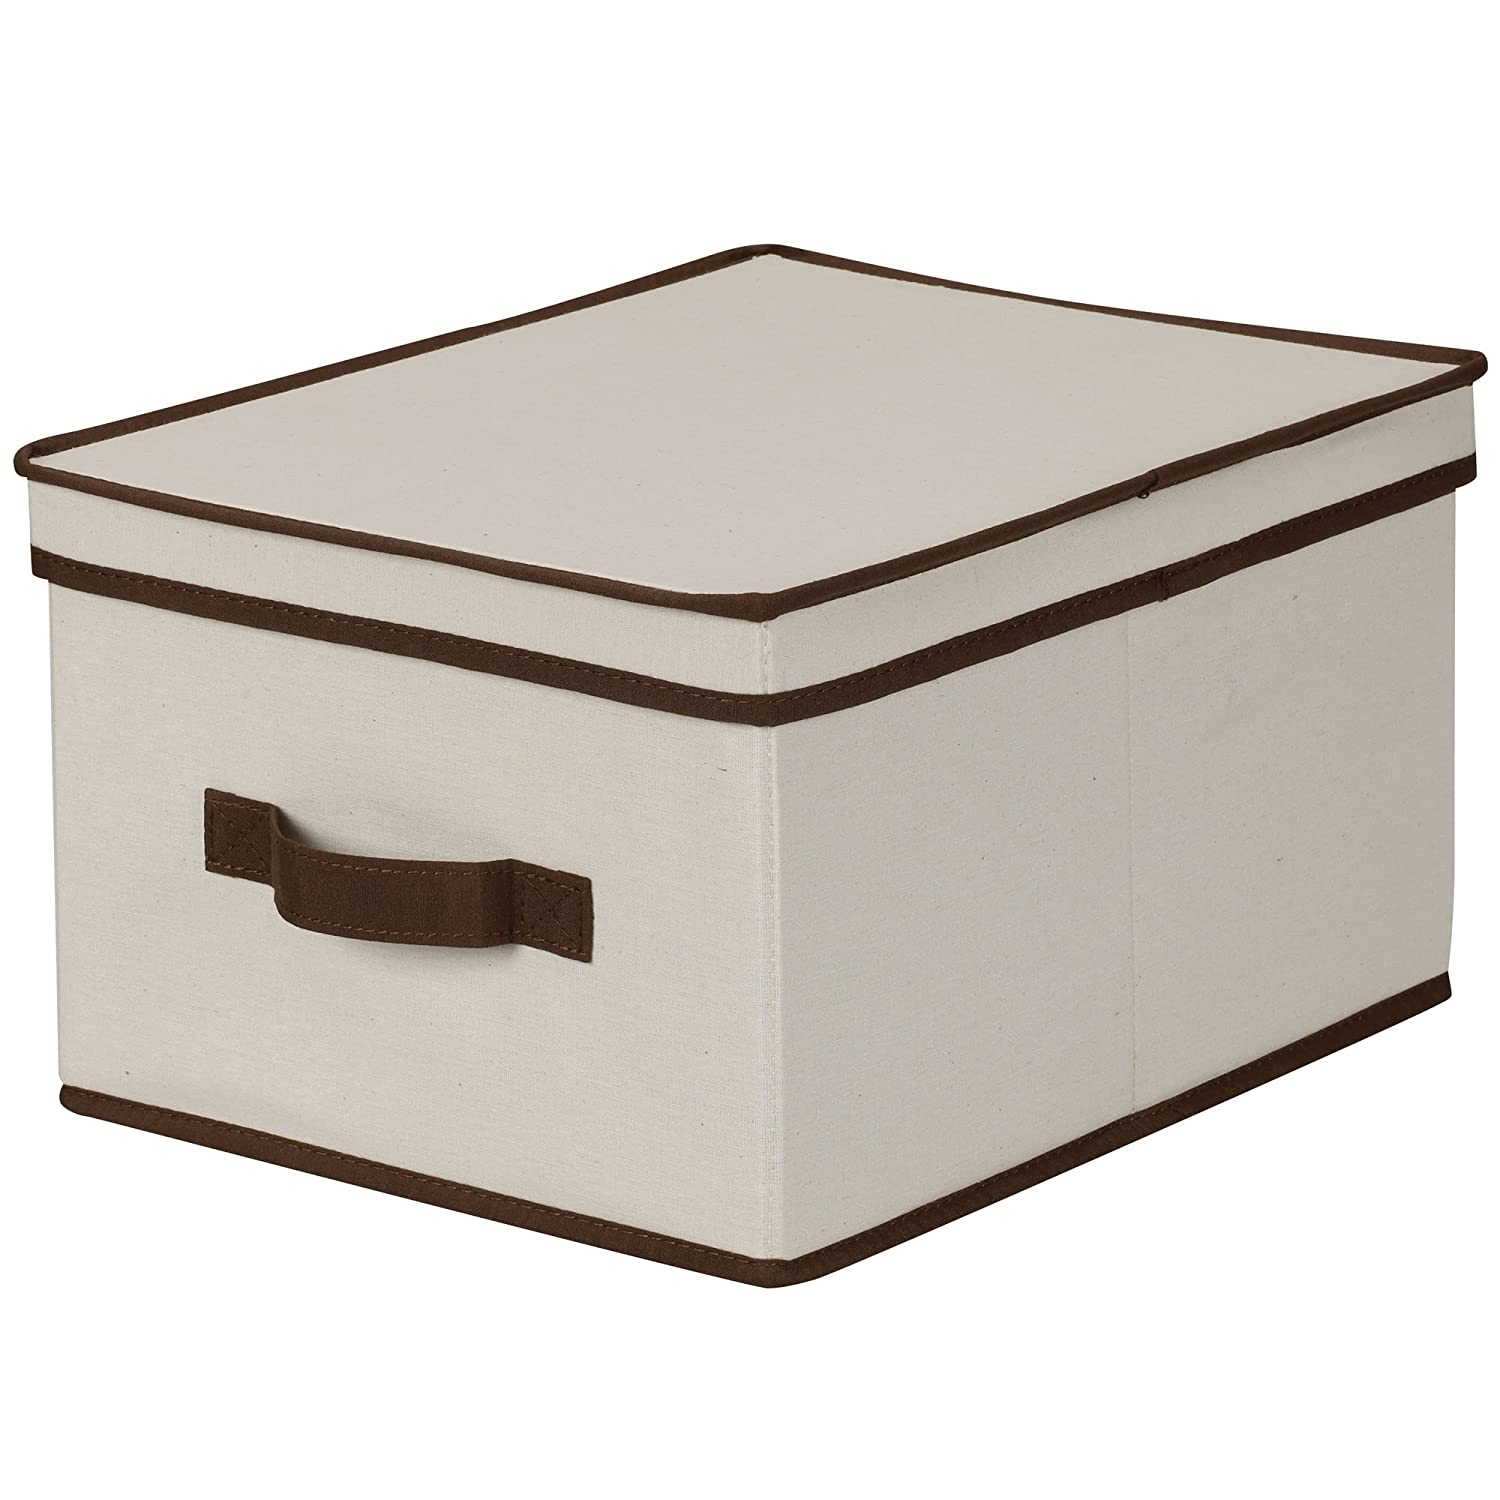 Amazon.com Household Essentials 513 Storage Box with Lid and Handle - Natural Beige Canvas with Brown Trim - Large Home u0026 Kitchen  sc 1 st  Amazon.com & Amazon.com: Household Essentials 513 Storage Box with Lid and Handle ...